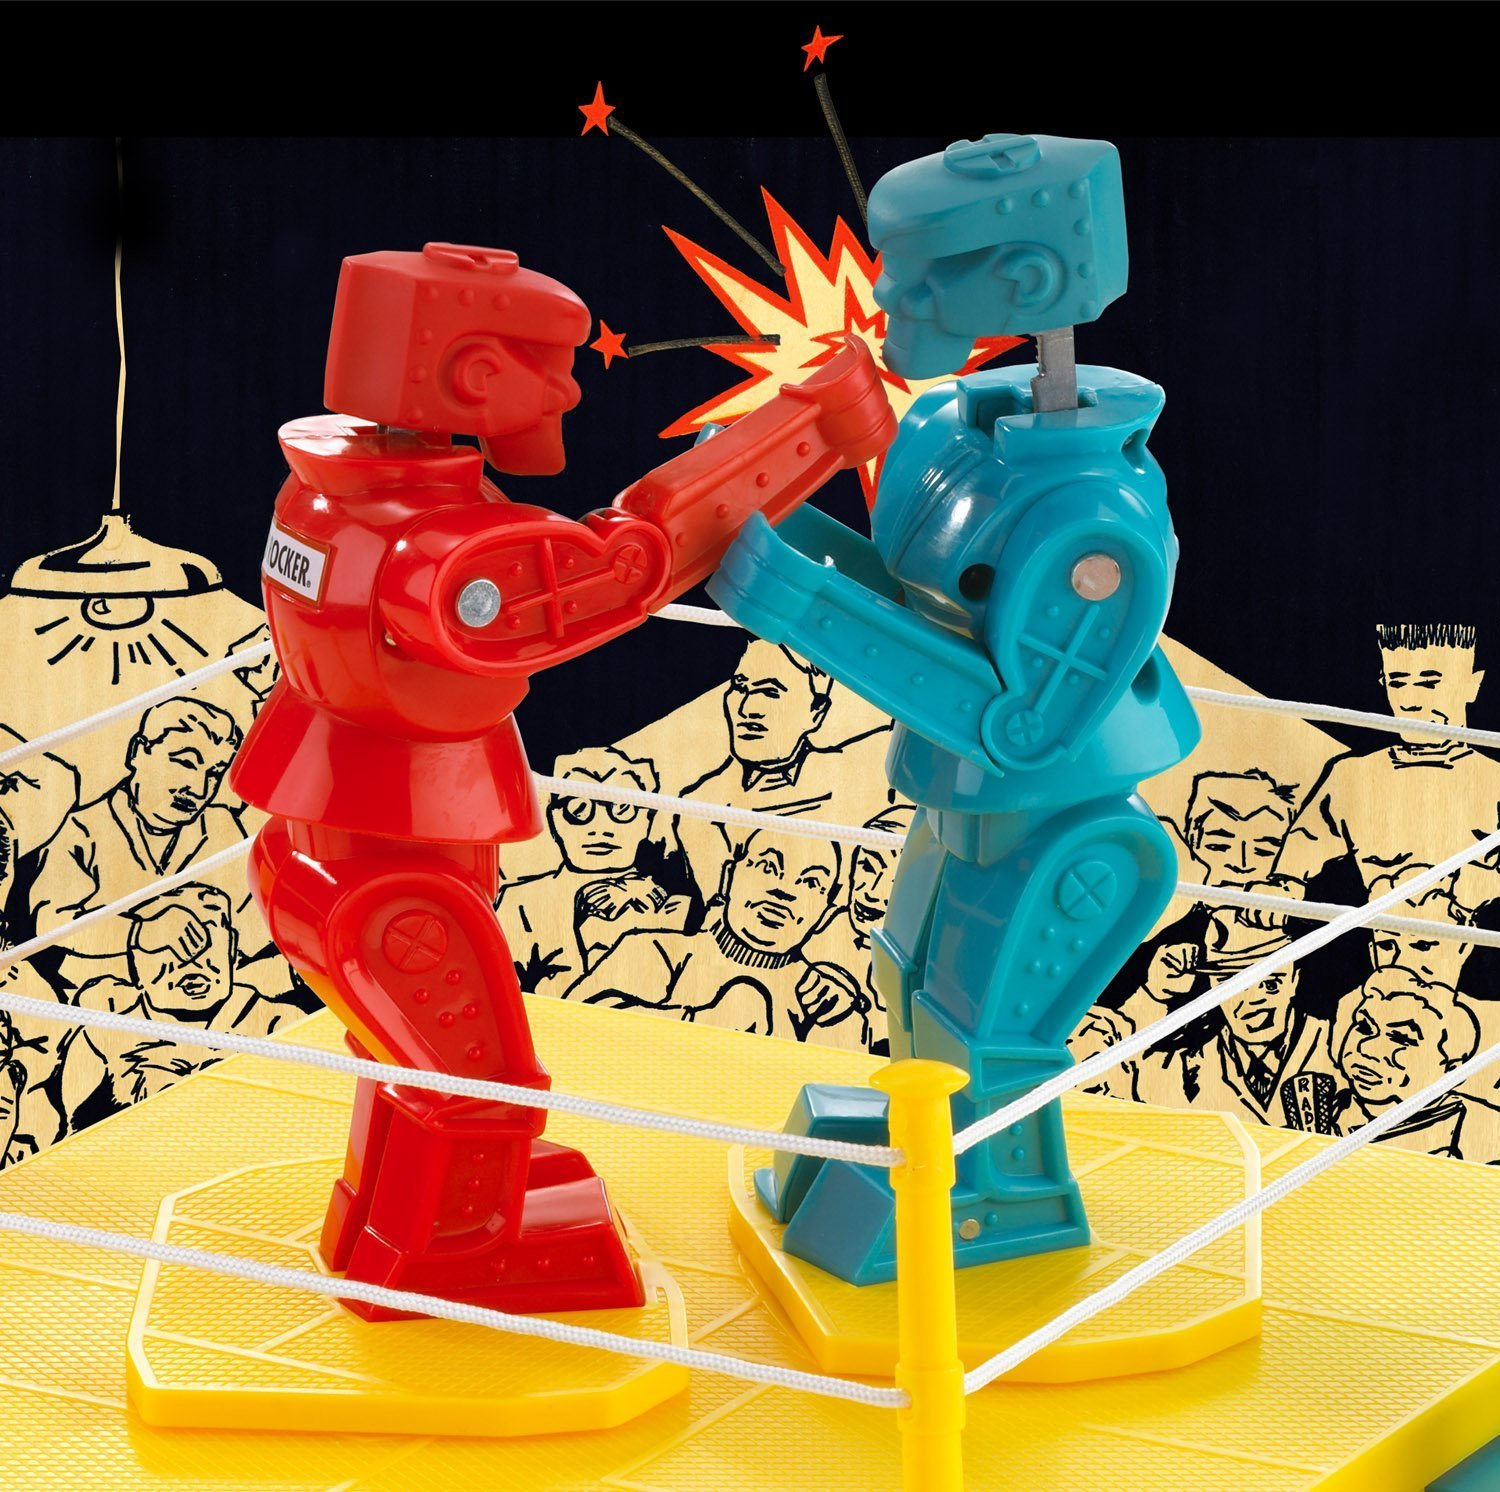 Rock em sock em robots fighting